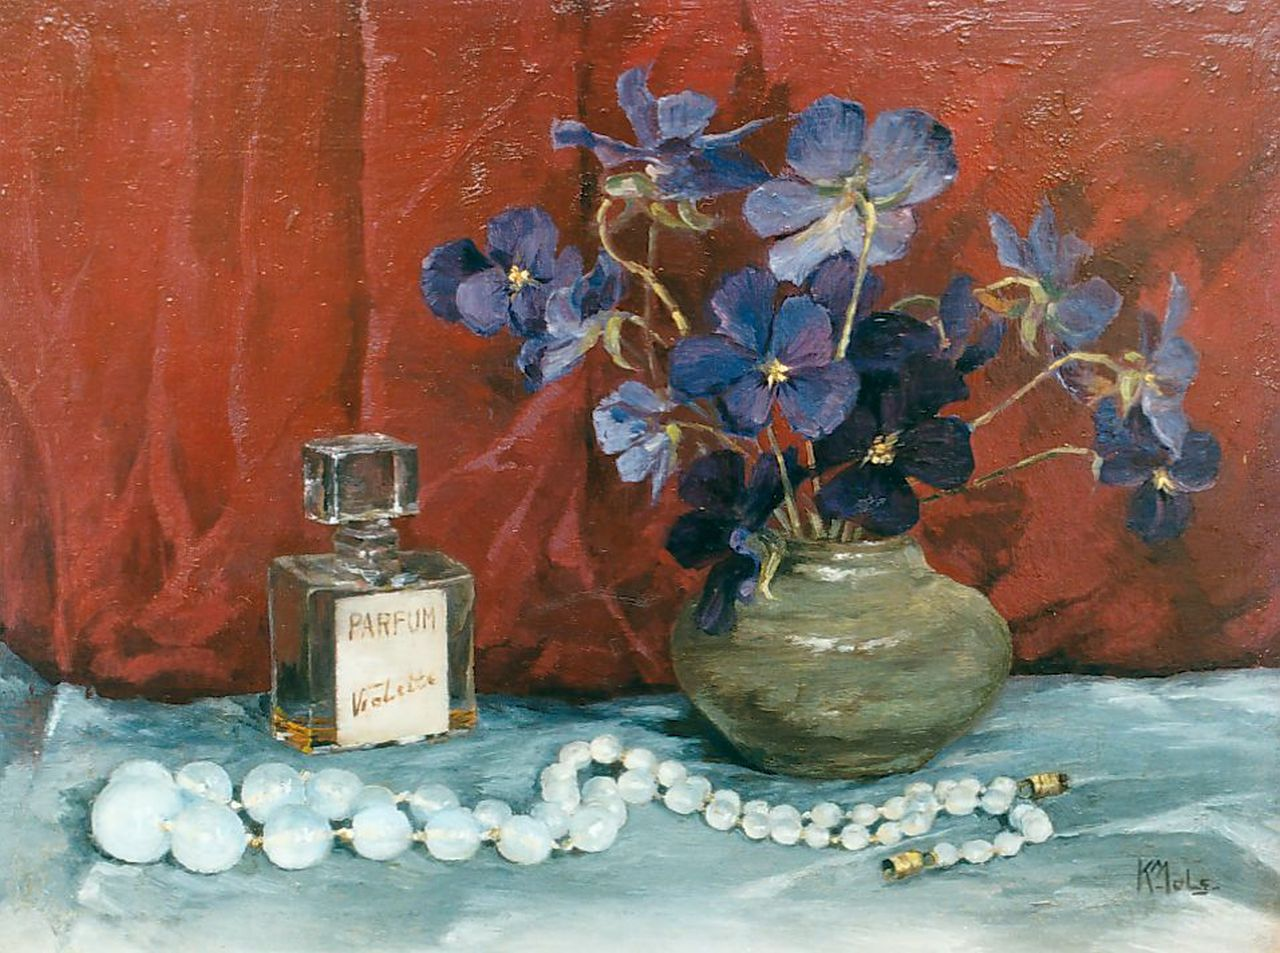 Karel Mols | Still life with violets and a perfume bottle, oil on panel, 18.5 x 24.5 cm, signed l.r.